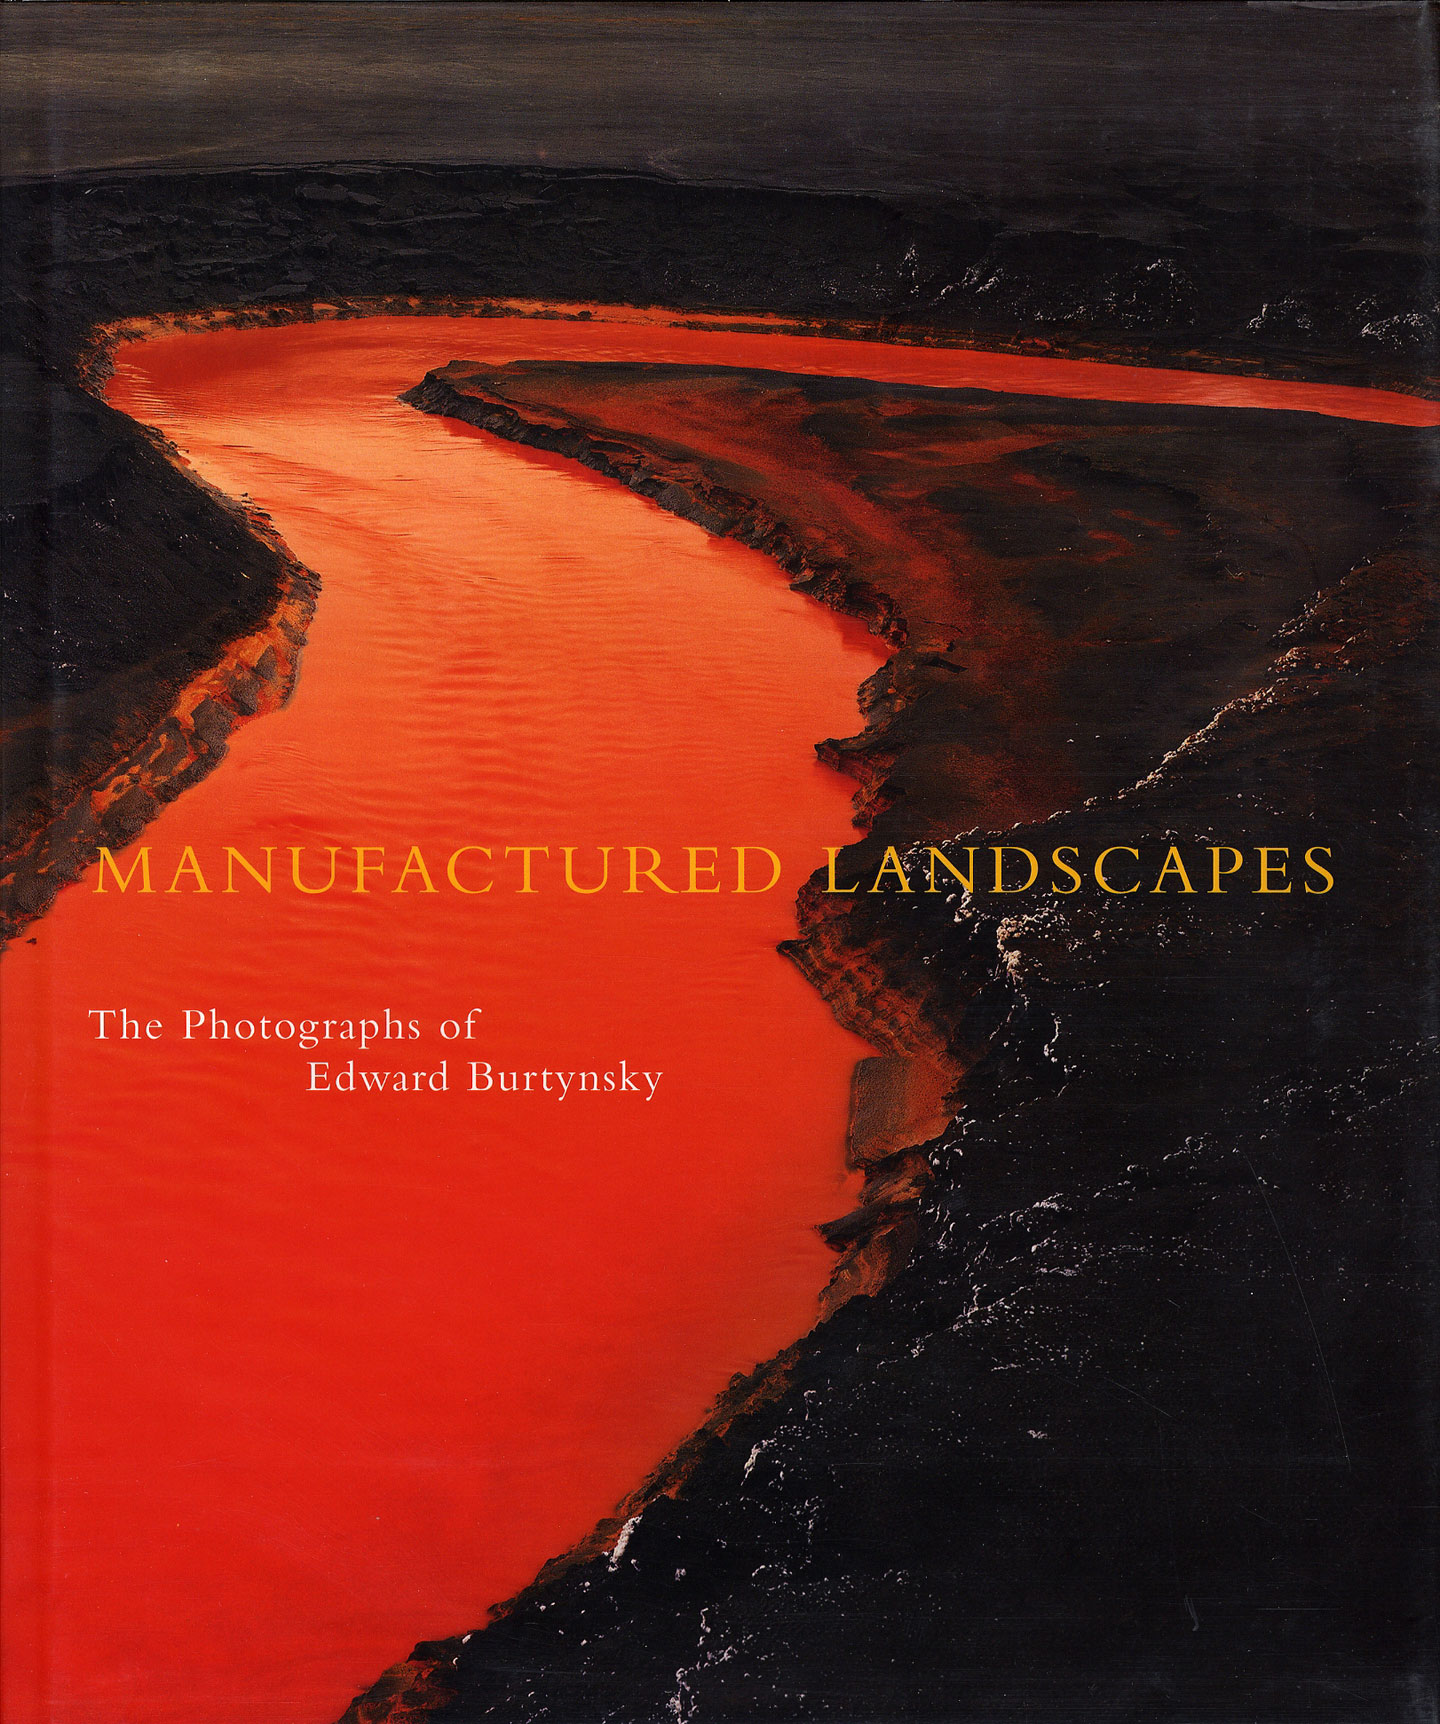 Edward Burtynsky: Manufactured Landscapes (First Printing)